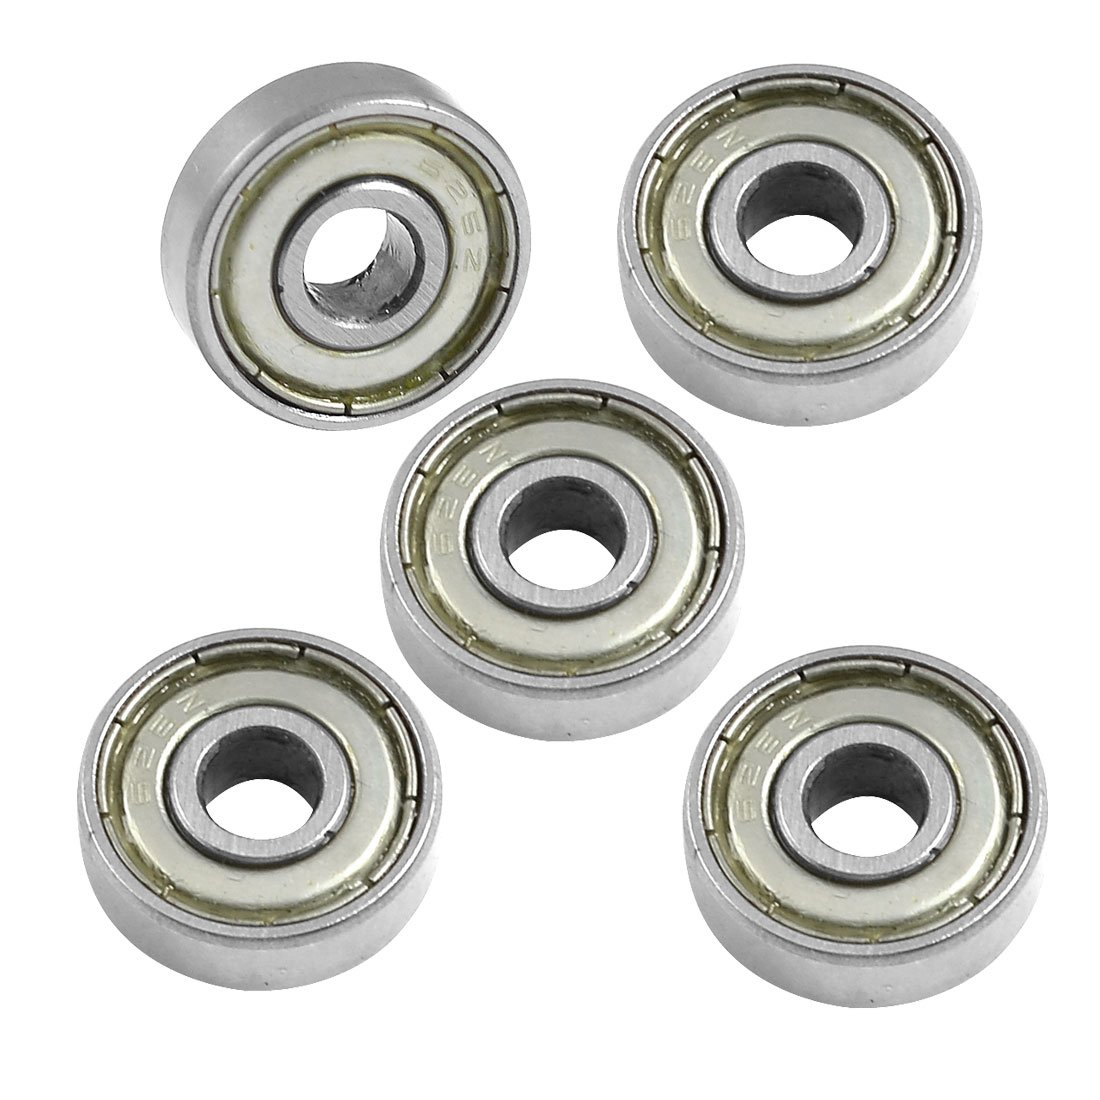 THGS <font><b>626Z</b></font> 6mm x 19mm x 6mm Shielded Radial Miniature Deep Groove Ball <font><b>Bearing</b></font> 5 pcs image